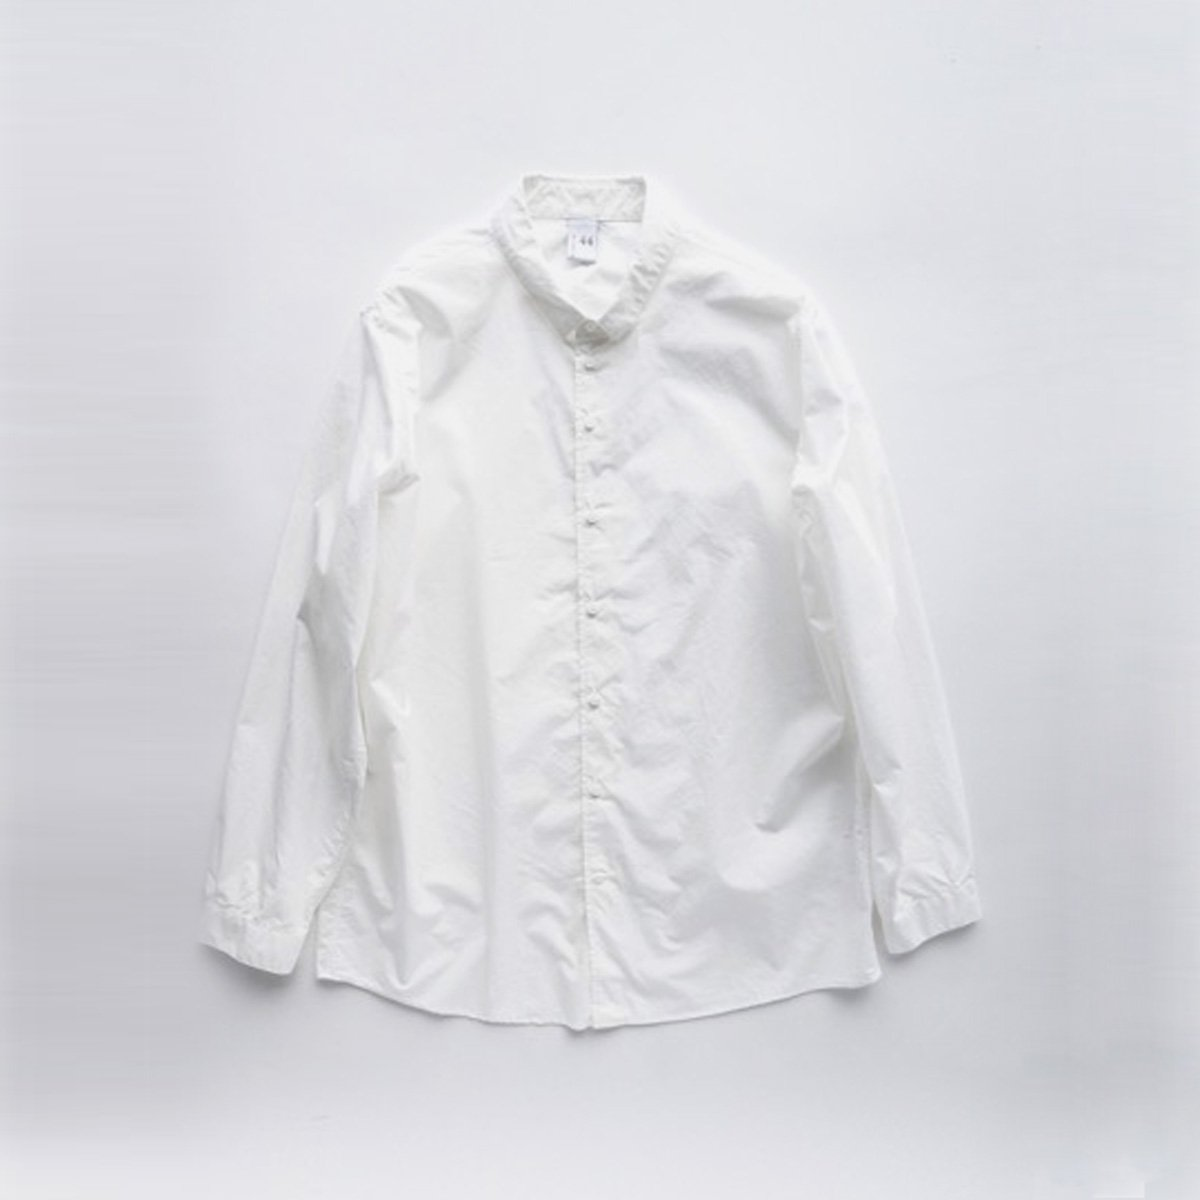 NO CONTROL AIR 60/1 SUPIMA COTTON TYPEWRITER SHIRT (off white)